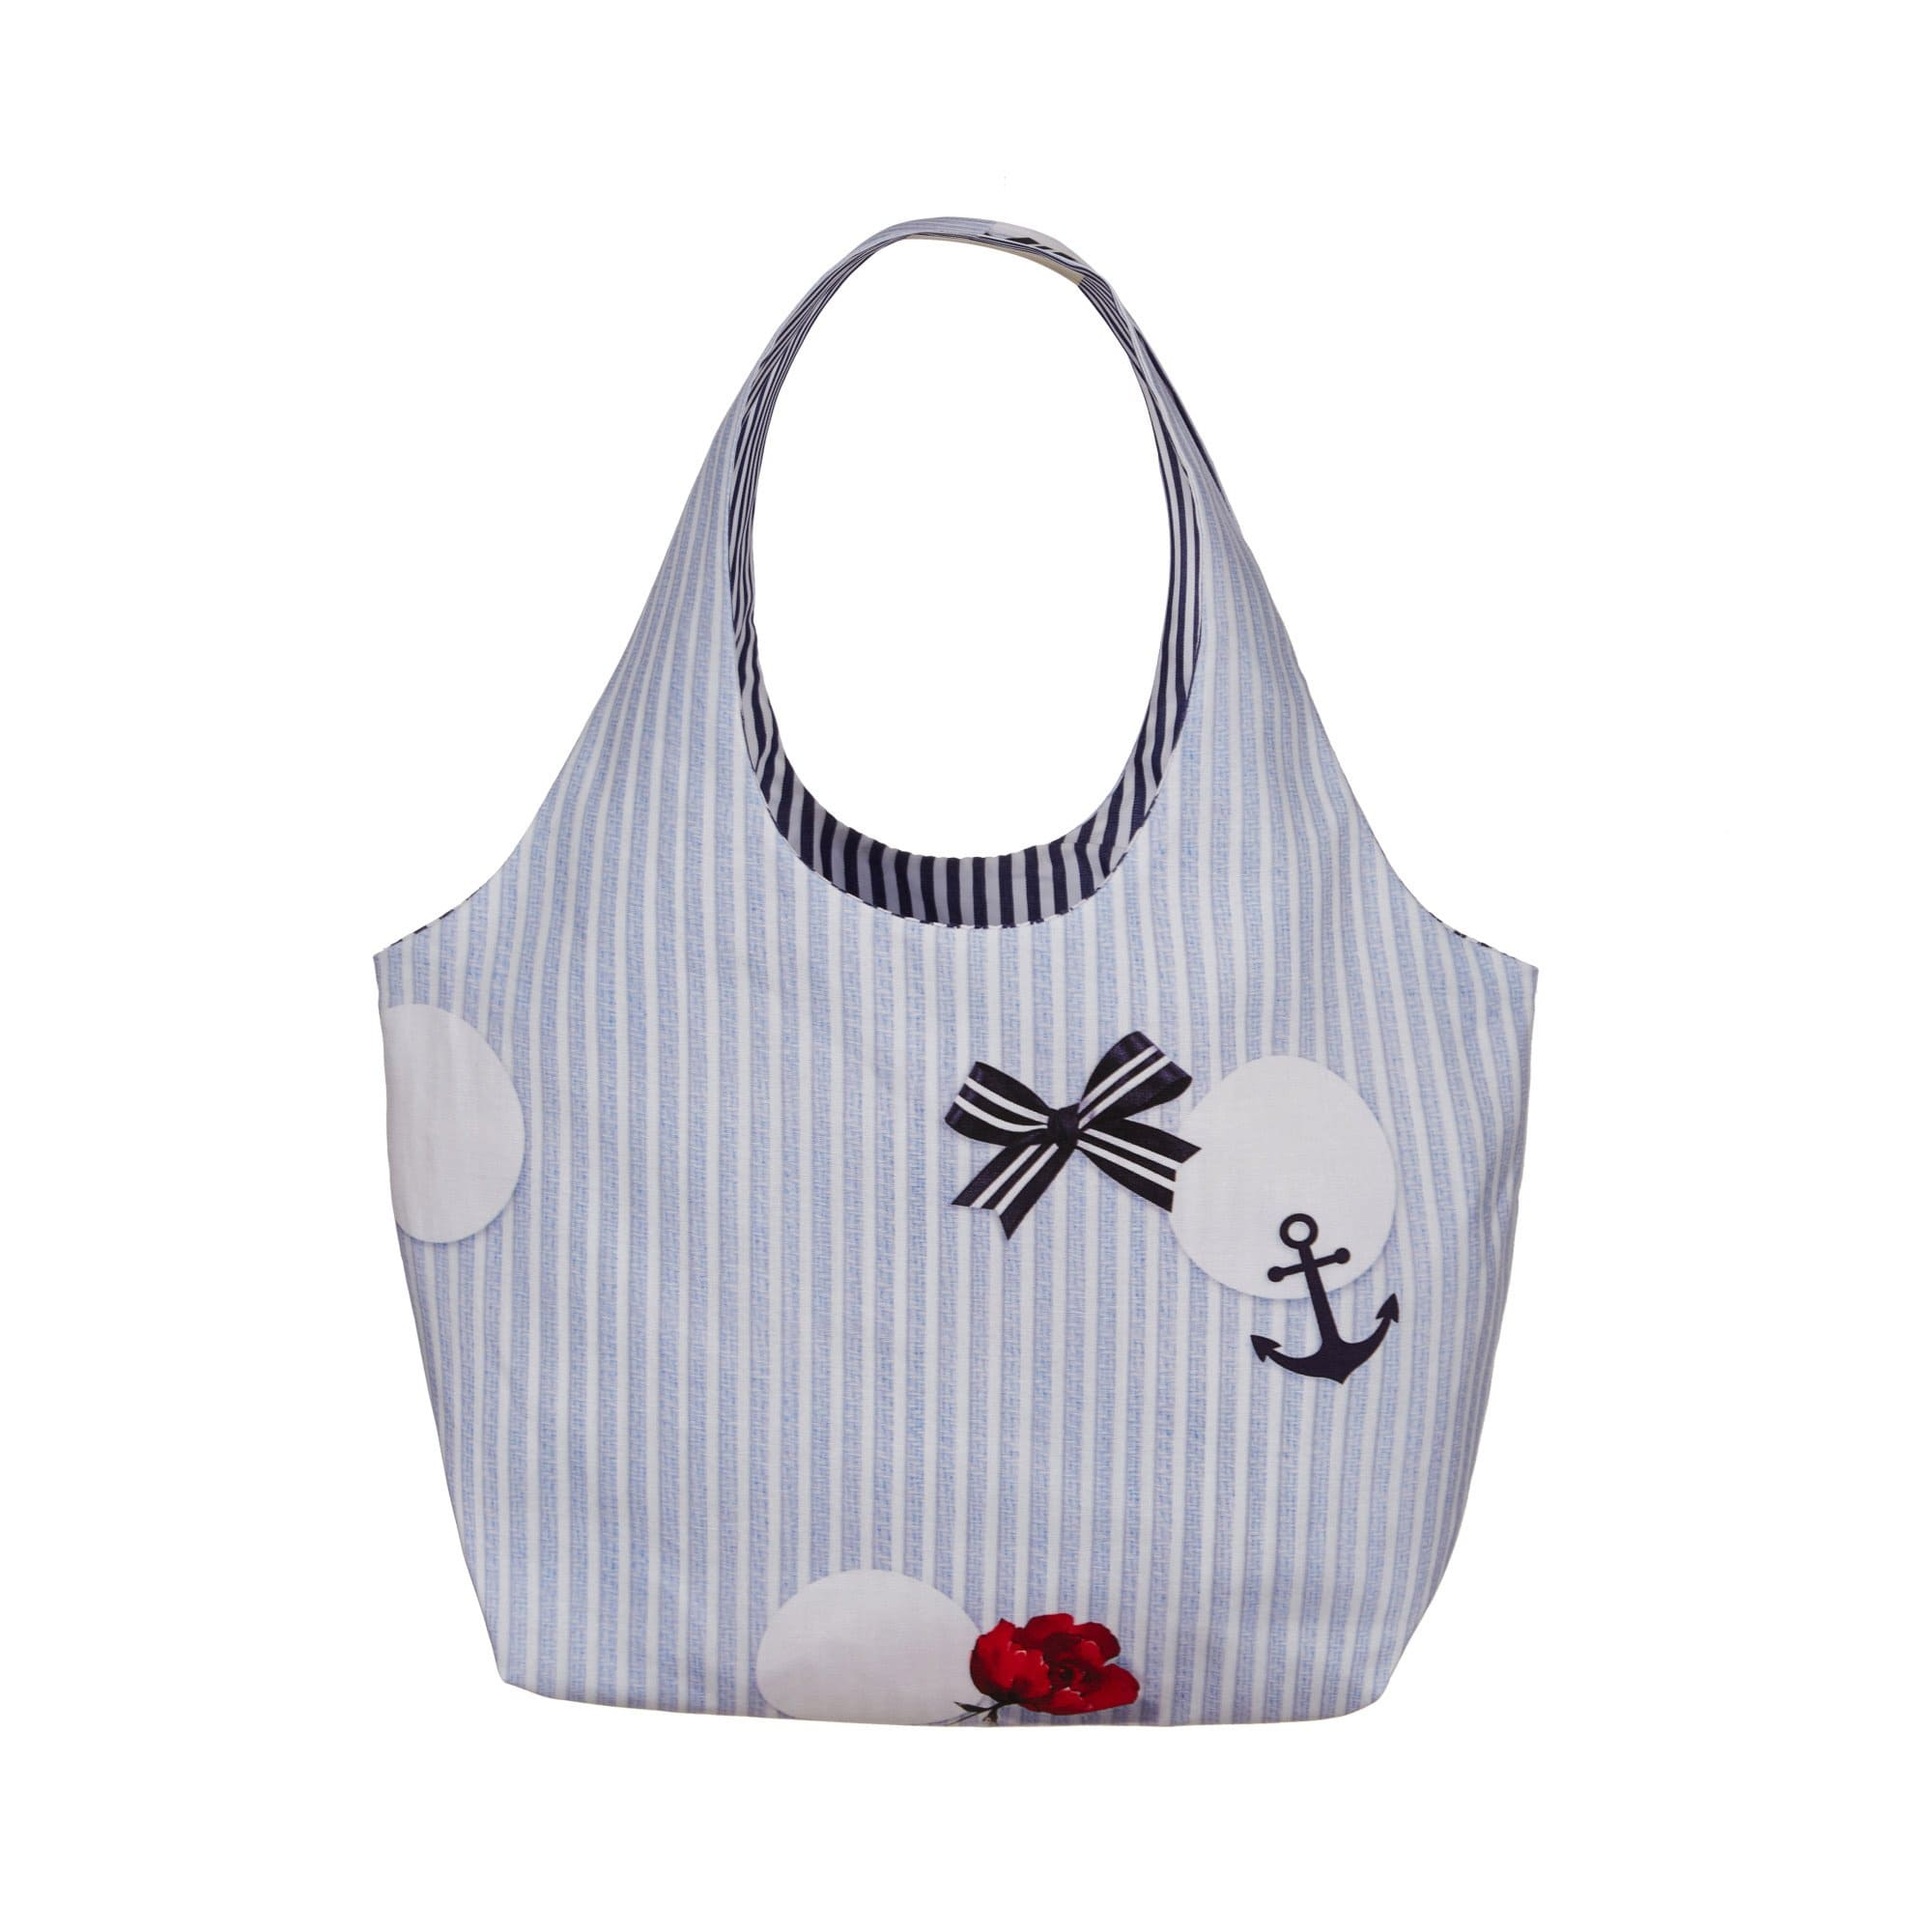 LAPIN HOUSE ANCHOR BAG